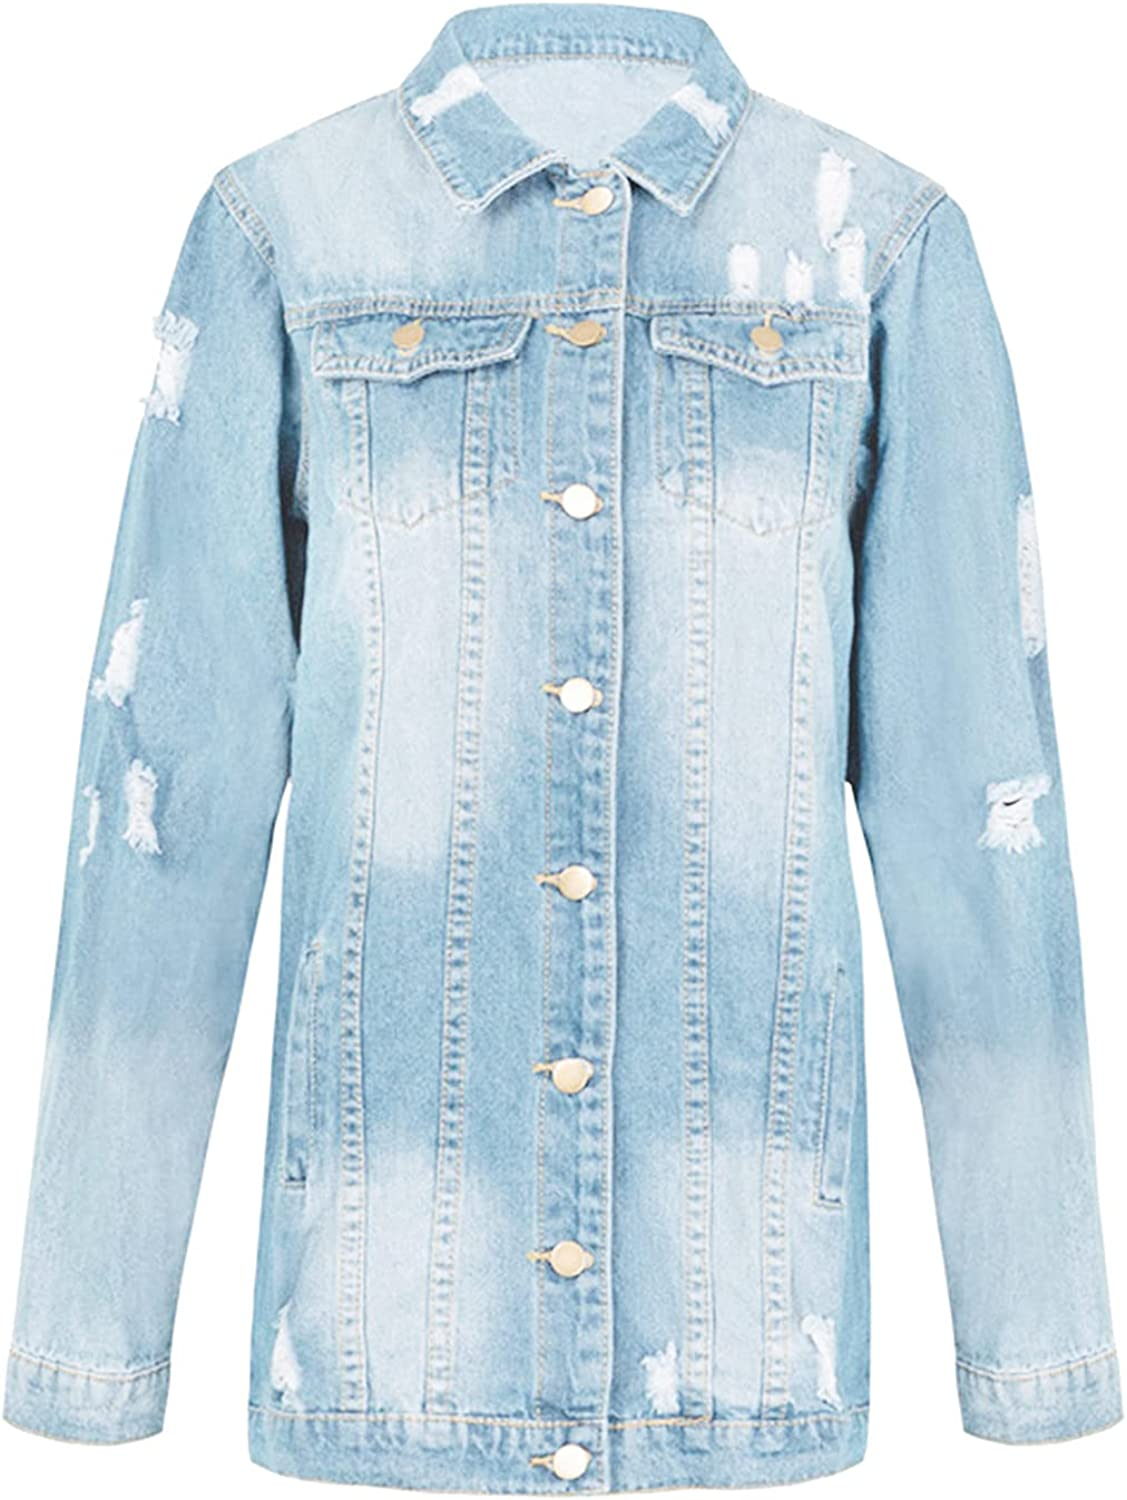 RUIY Fall Jackets for Women,Womens Denim Ripped Distressed Long Sleeve Button Down Long Casual Jean Jackets Solid Coat